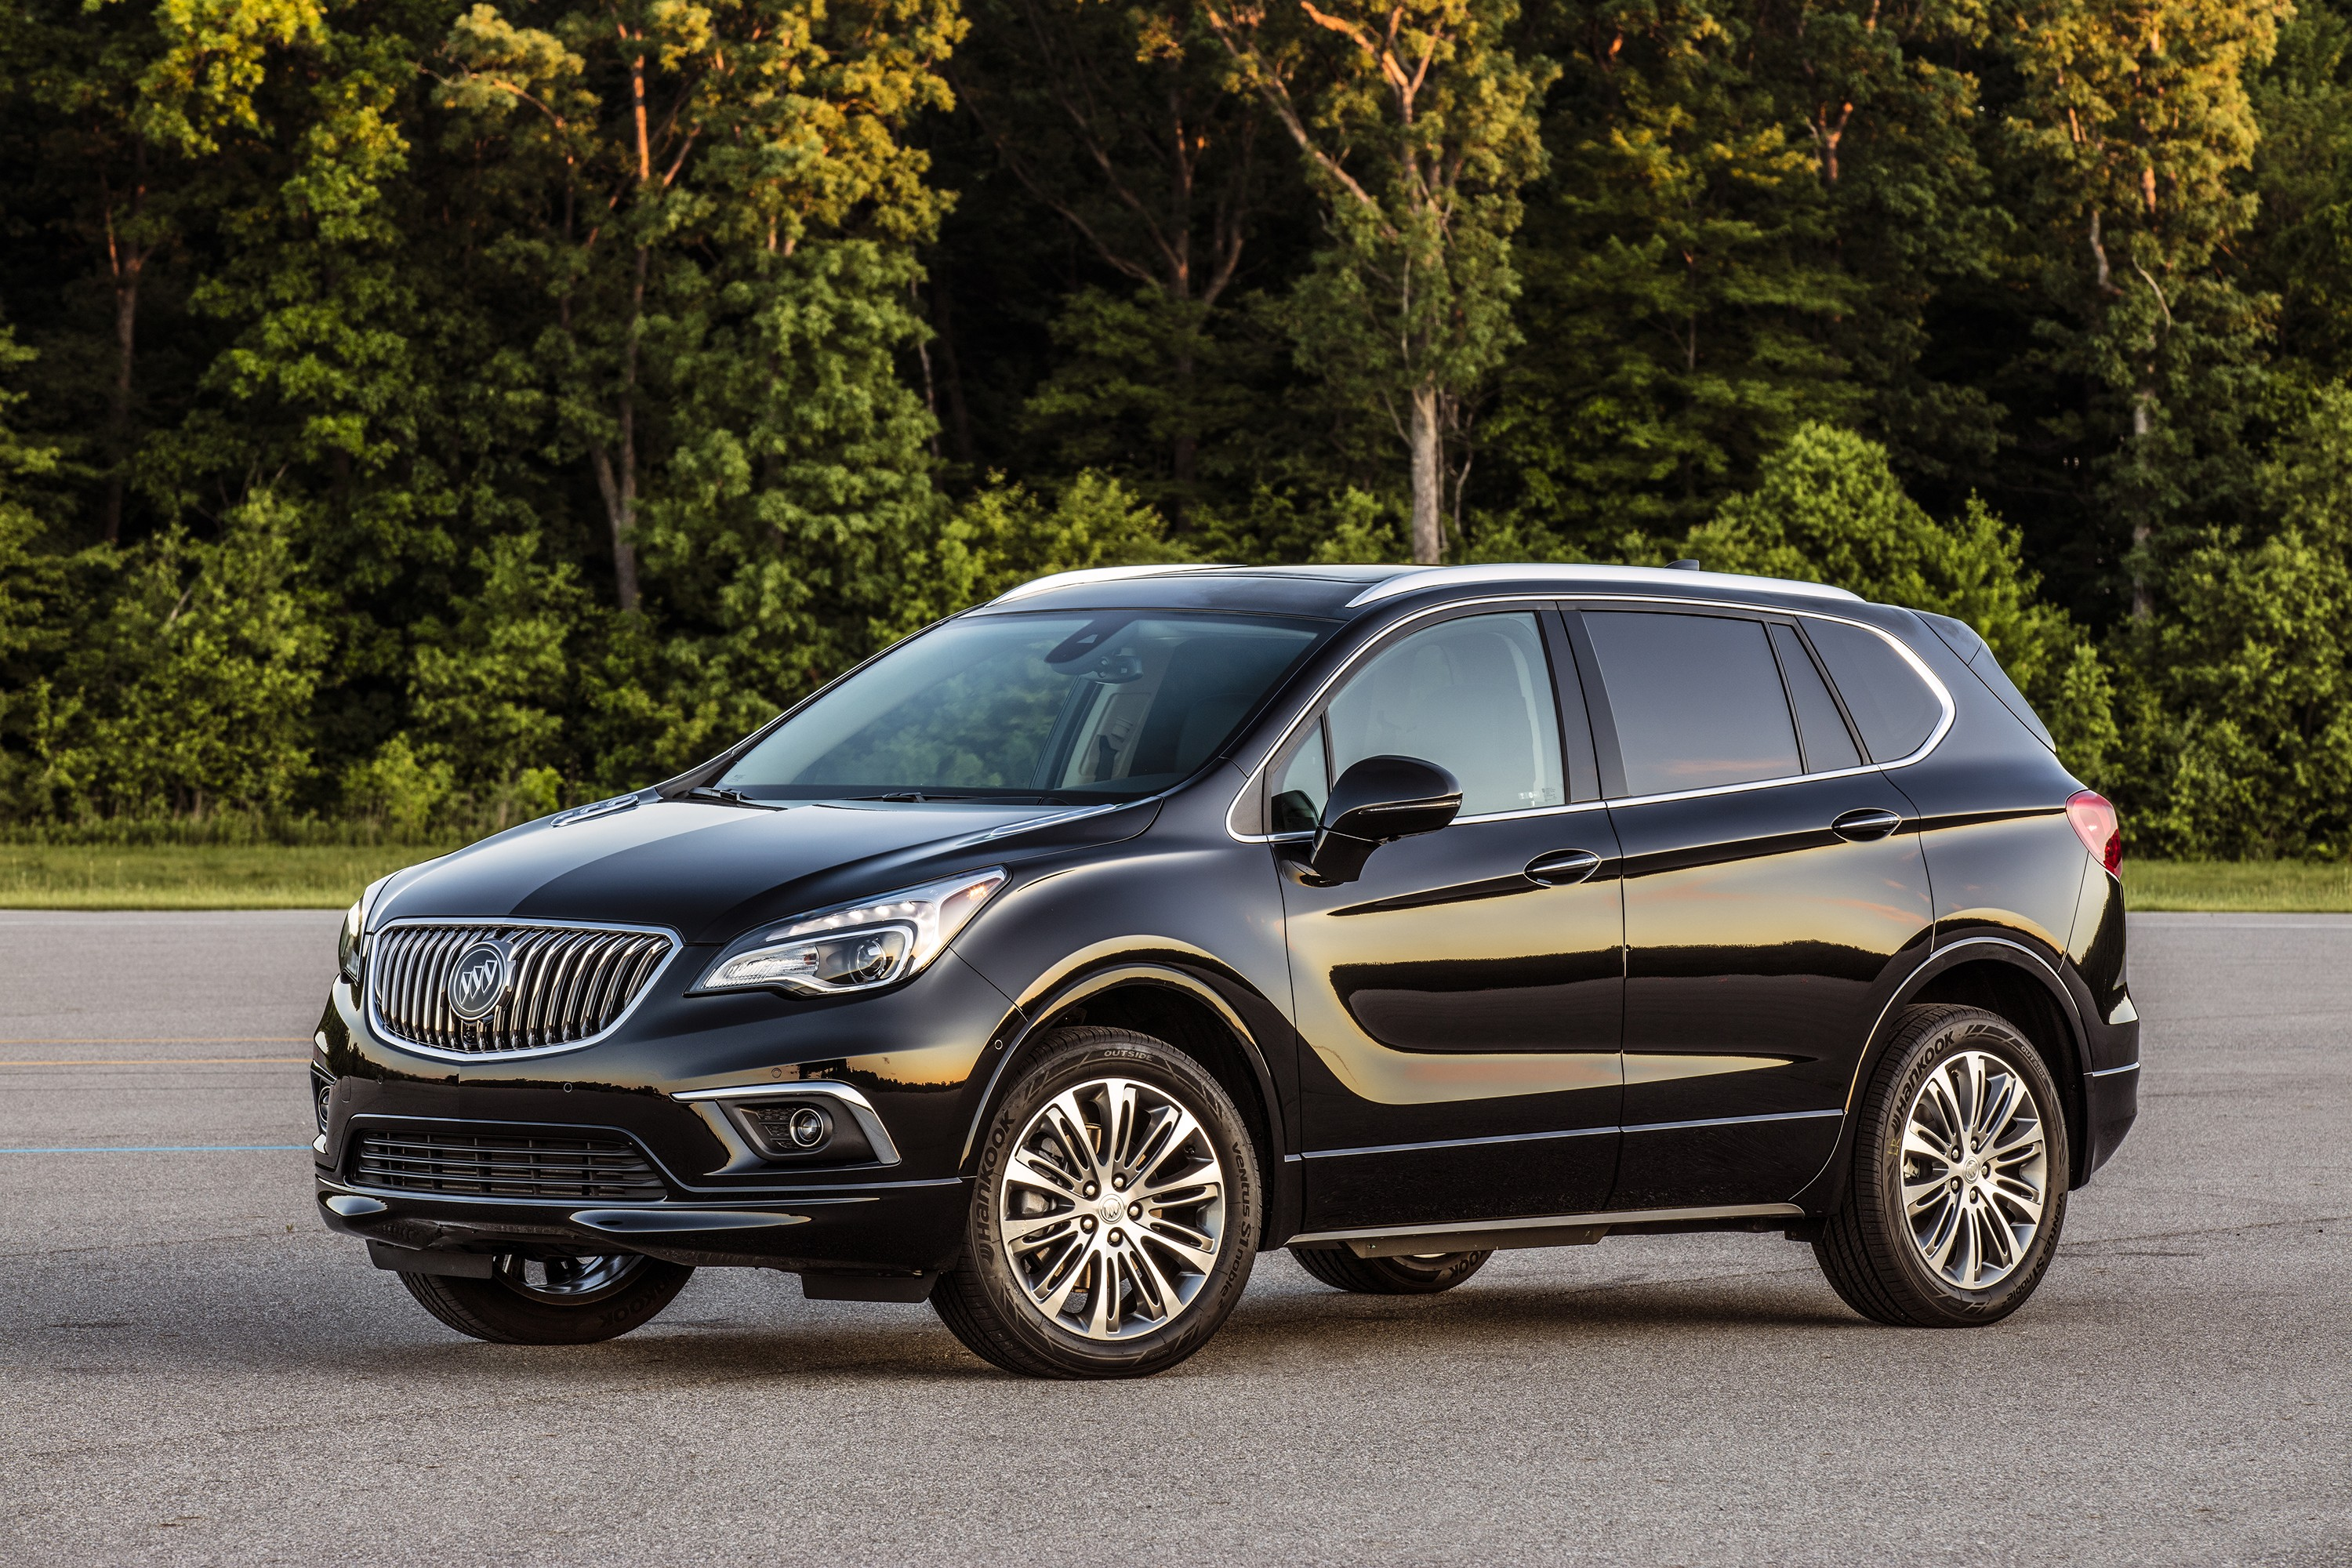 2014 - [Buick] Envision - Page 4 2019-buick-envision-adds-hydra-matic-9-speed-automatic-transmission_2